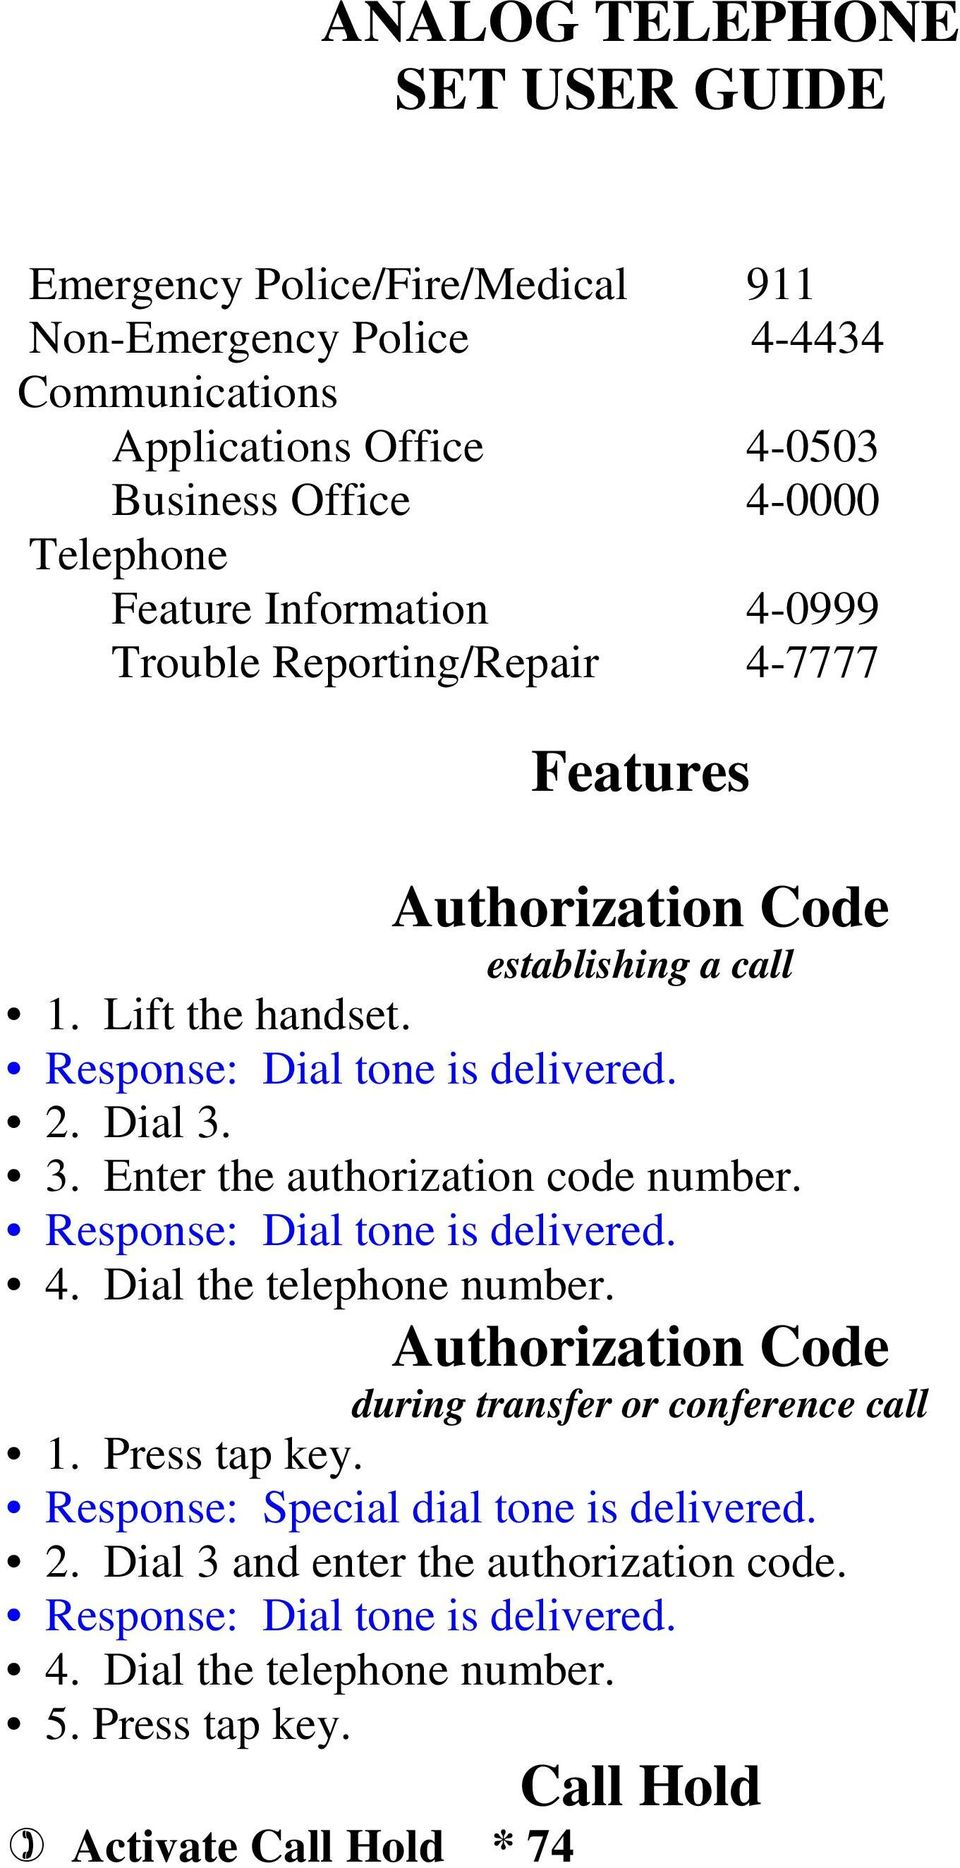 call 2. Dial 3. 3. Enter the authorization code number. 4. Dial the telephone number.